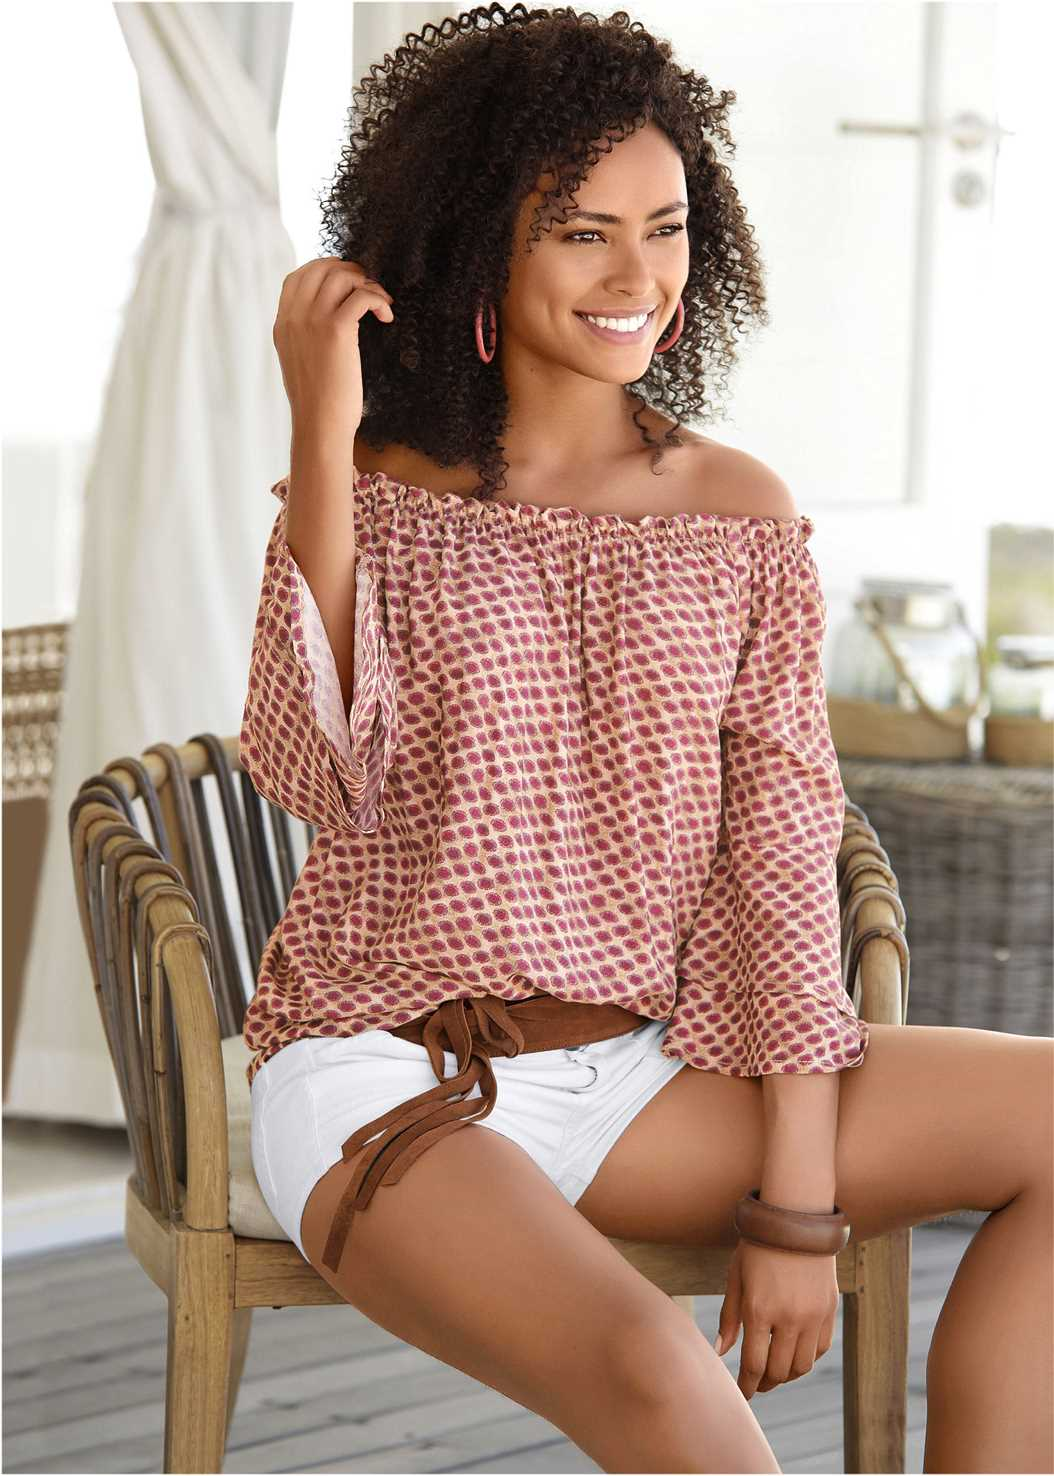 Off The Shoulder Top,Frayed Cut Off Jean Shorts,Ripped Jean Shorts,Belted Cuffed Shorts,Multi Color Stone Sandals,Tassel Detail Hoop Earrings